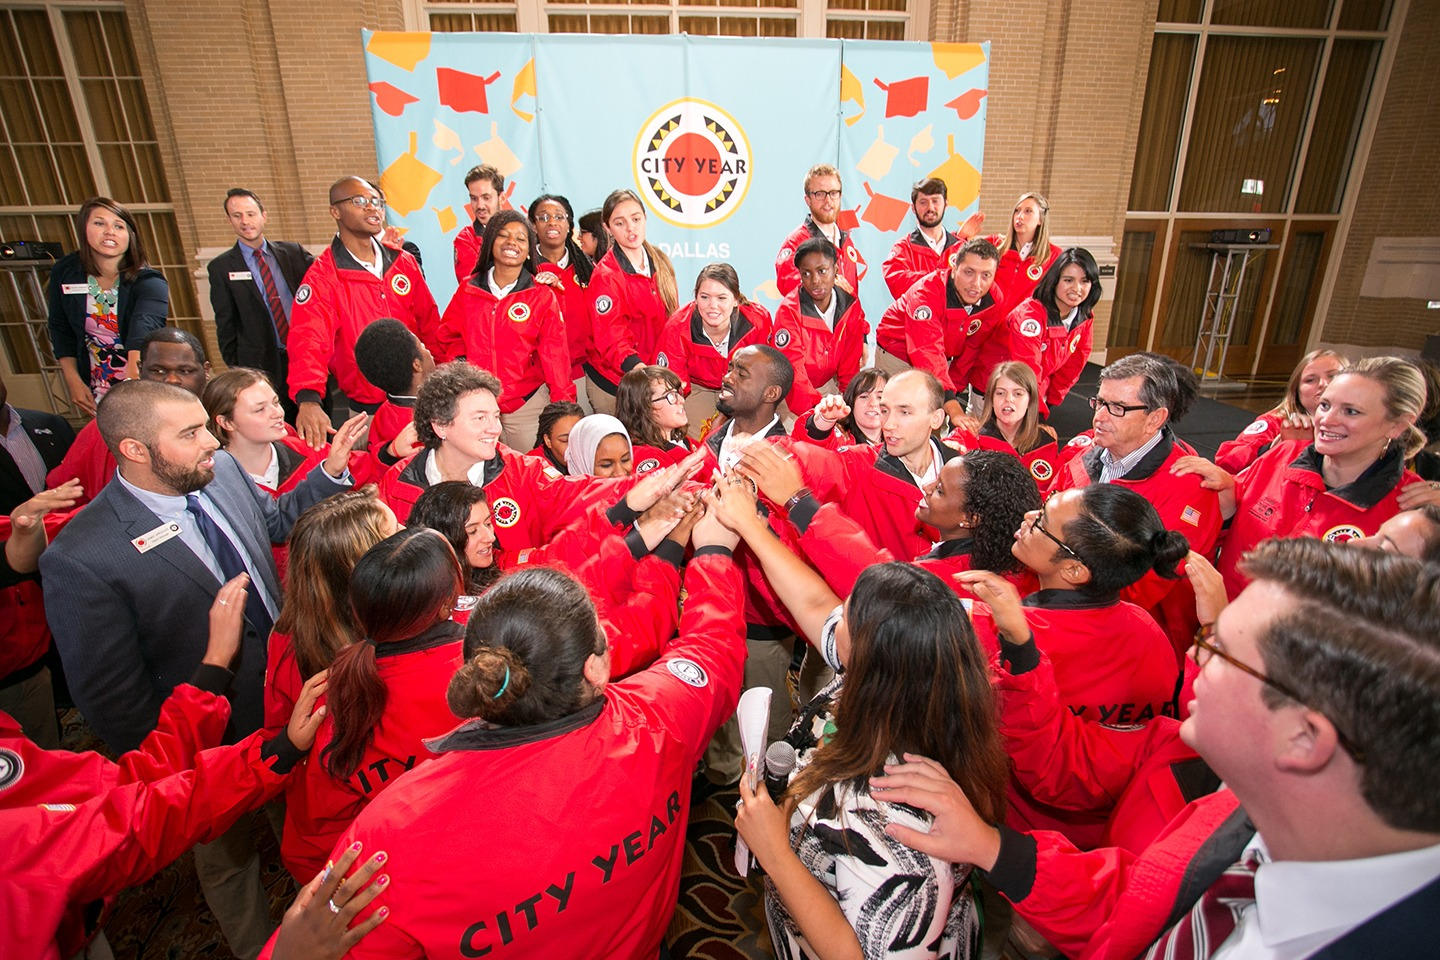 A group of City Year AmeriCorps members and staff doing a spirit break